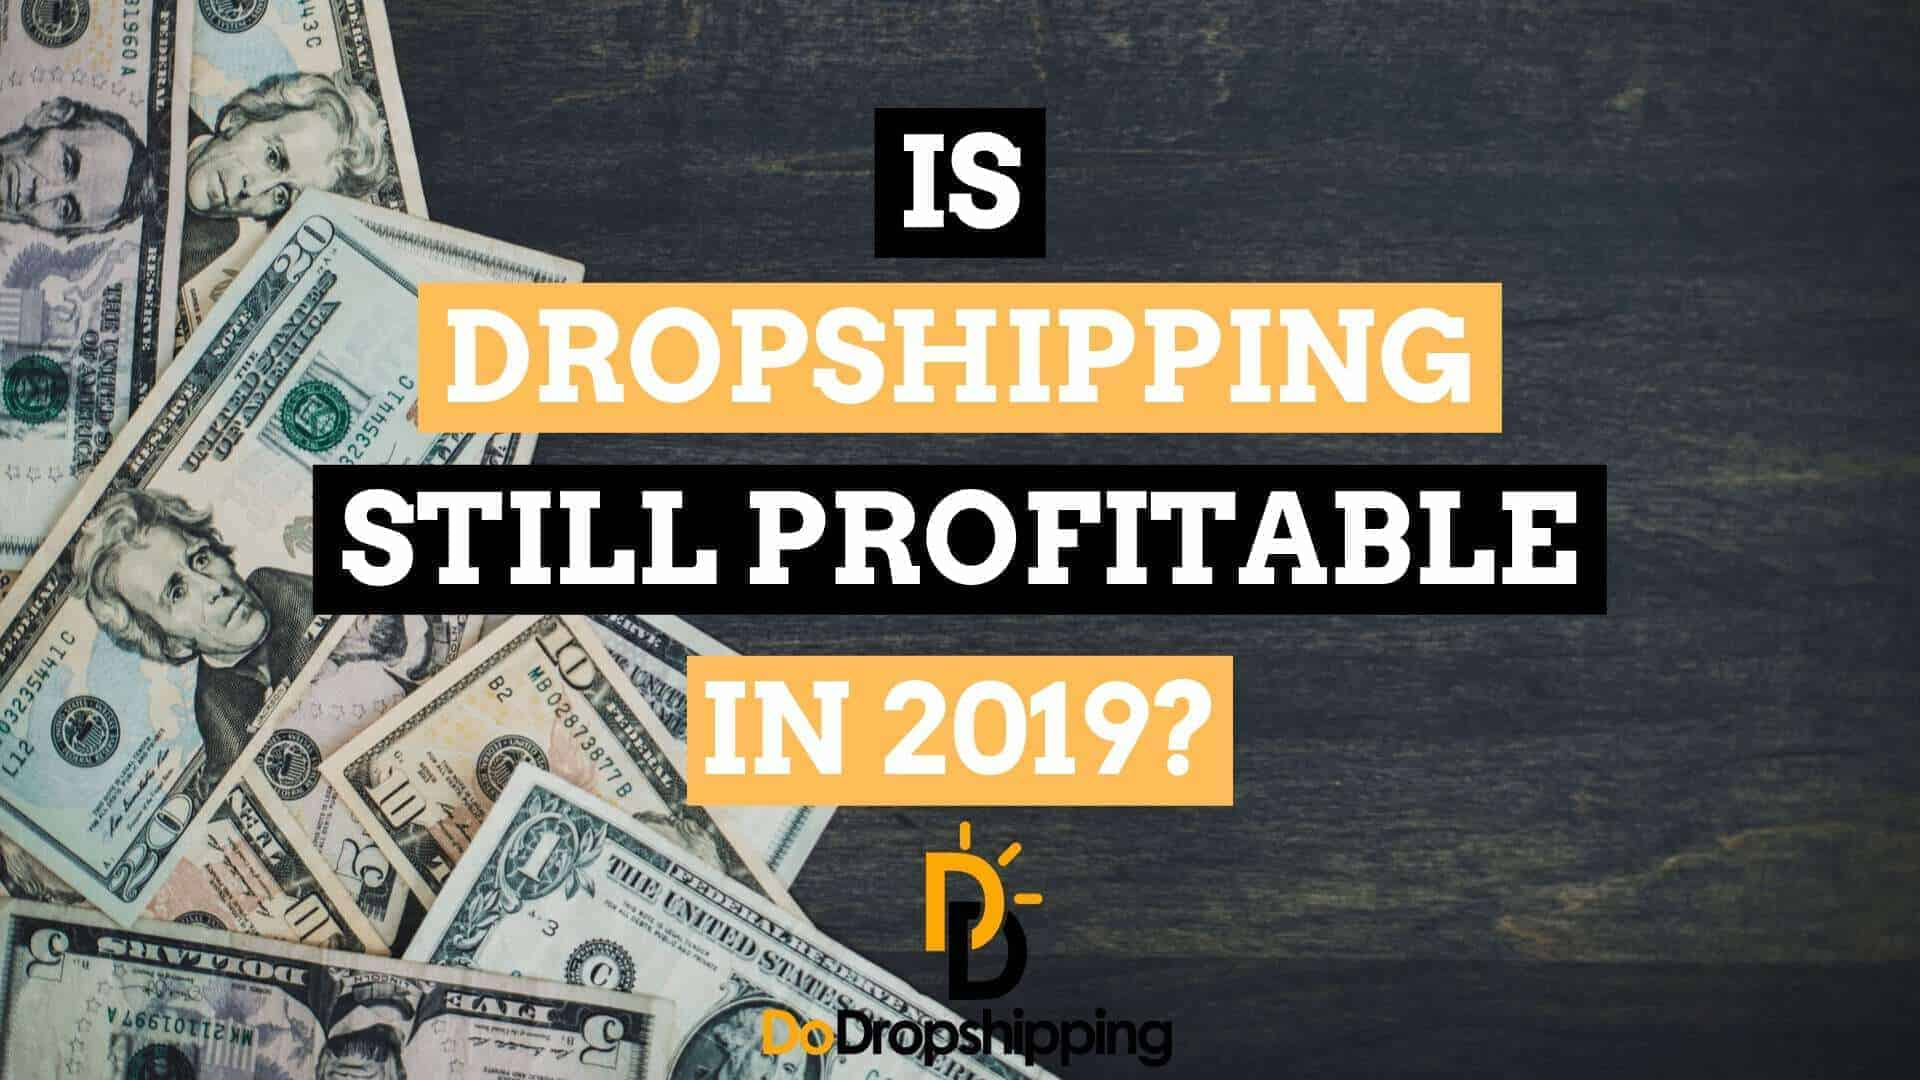 Is Dropshipping Still Profitable or Finally Dead in 2019?